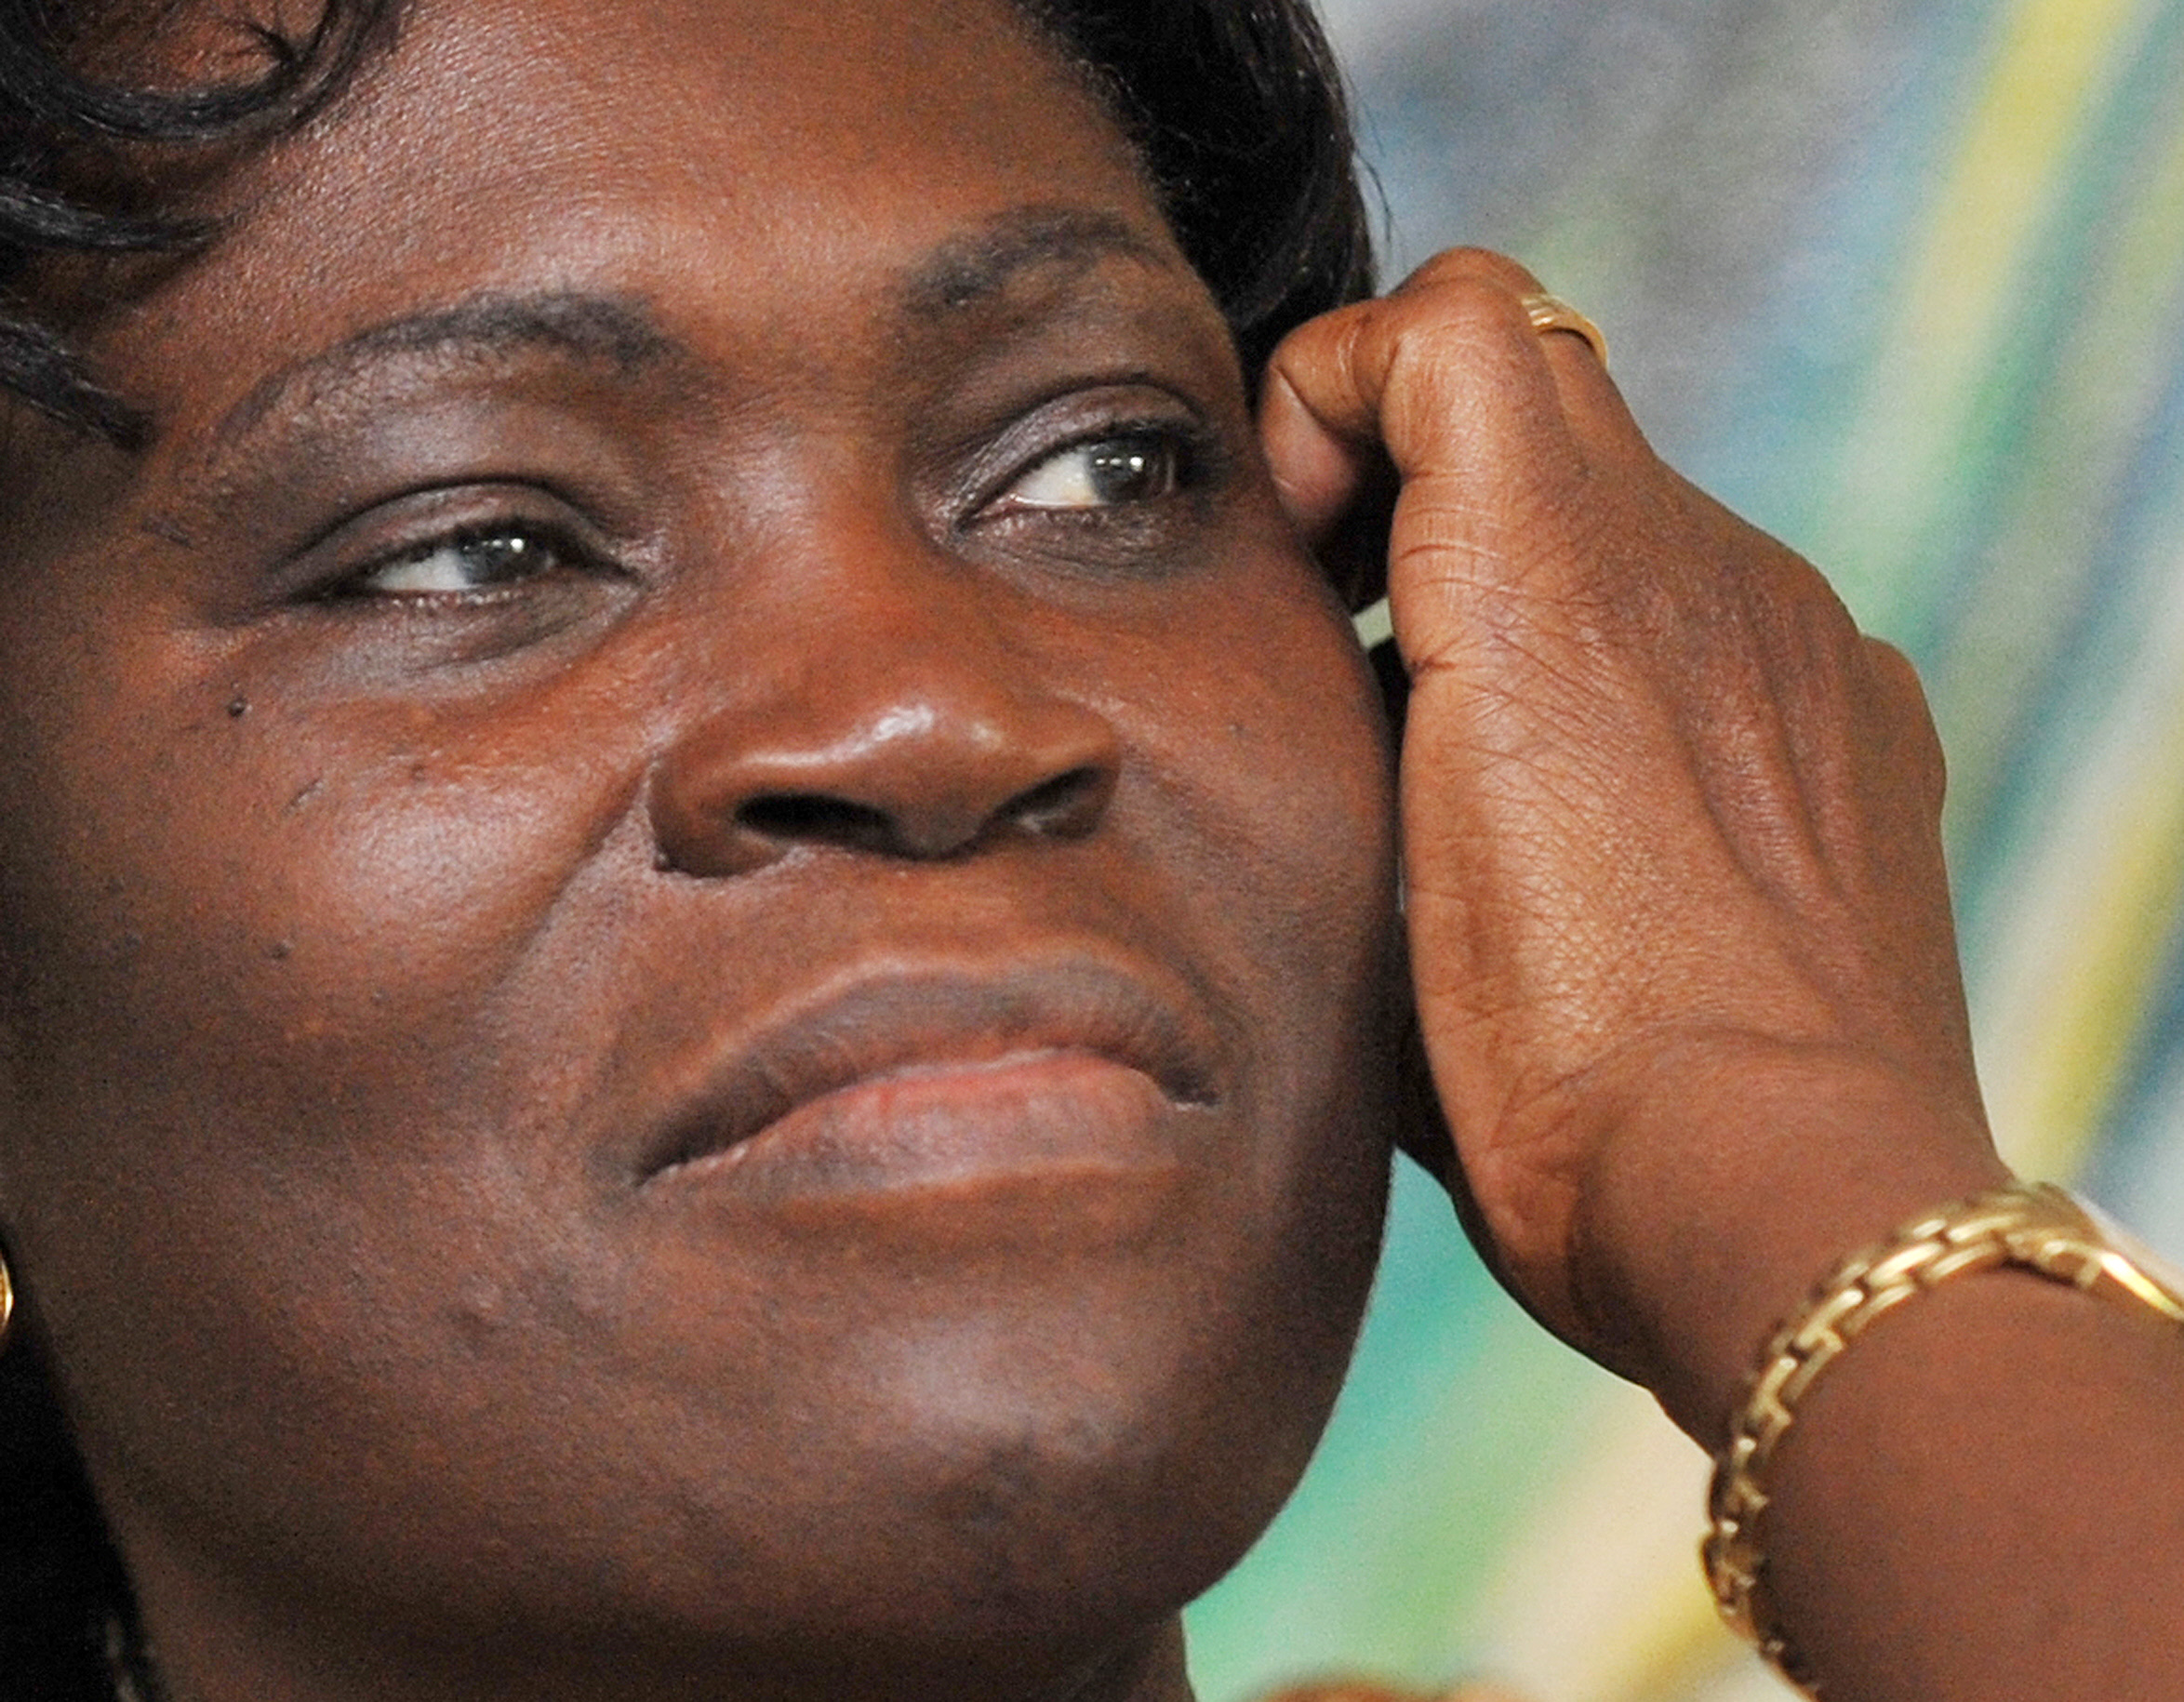 A close-up of Simone Gbagbo shows her scratching her face.